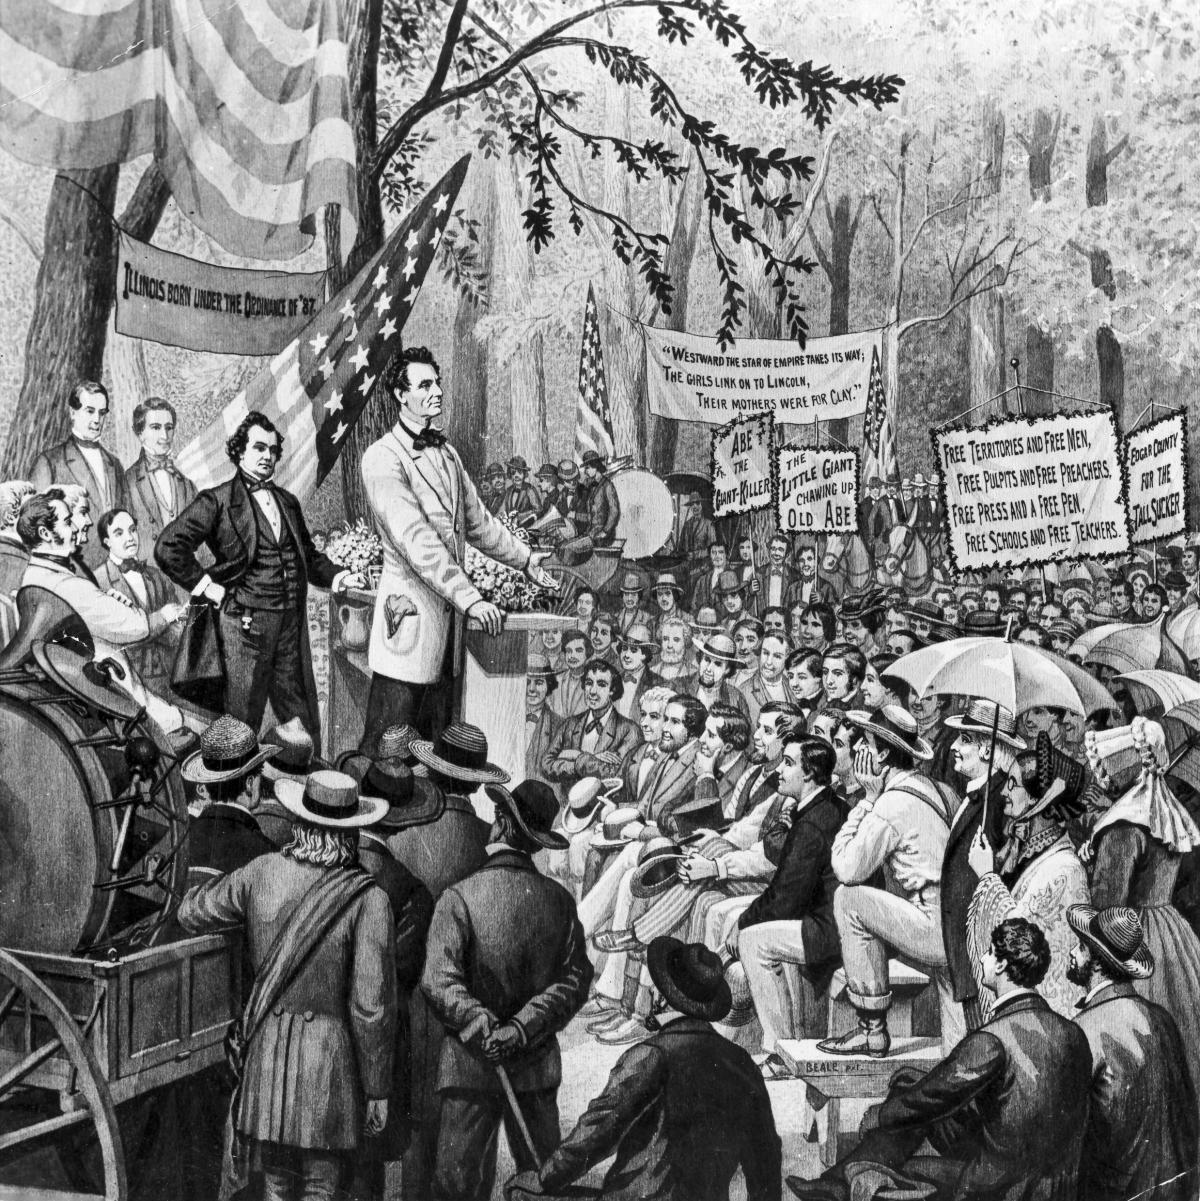 black and white illustration of man talking at a podium, surrounded by crowd of people